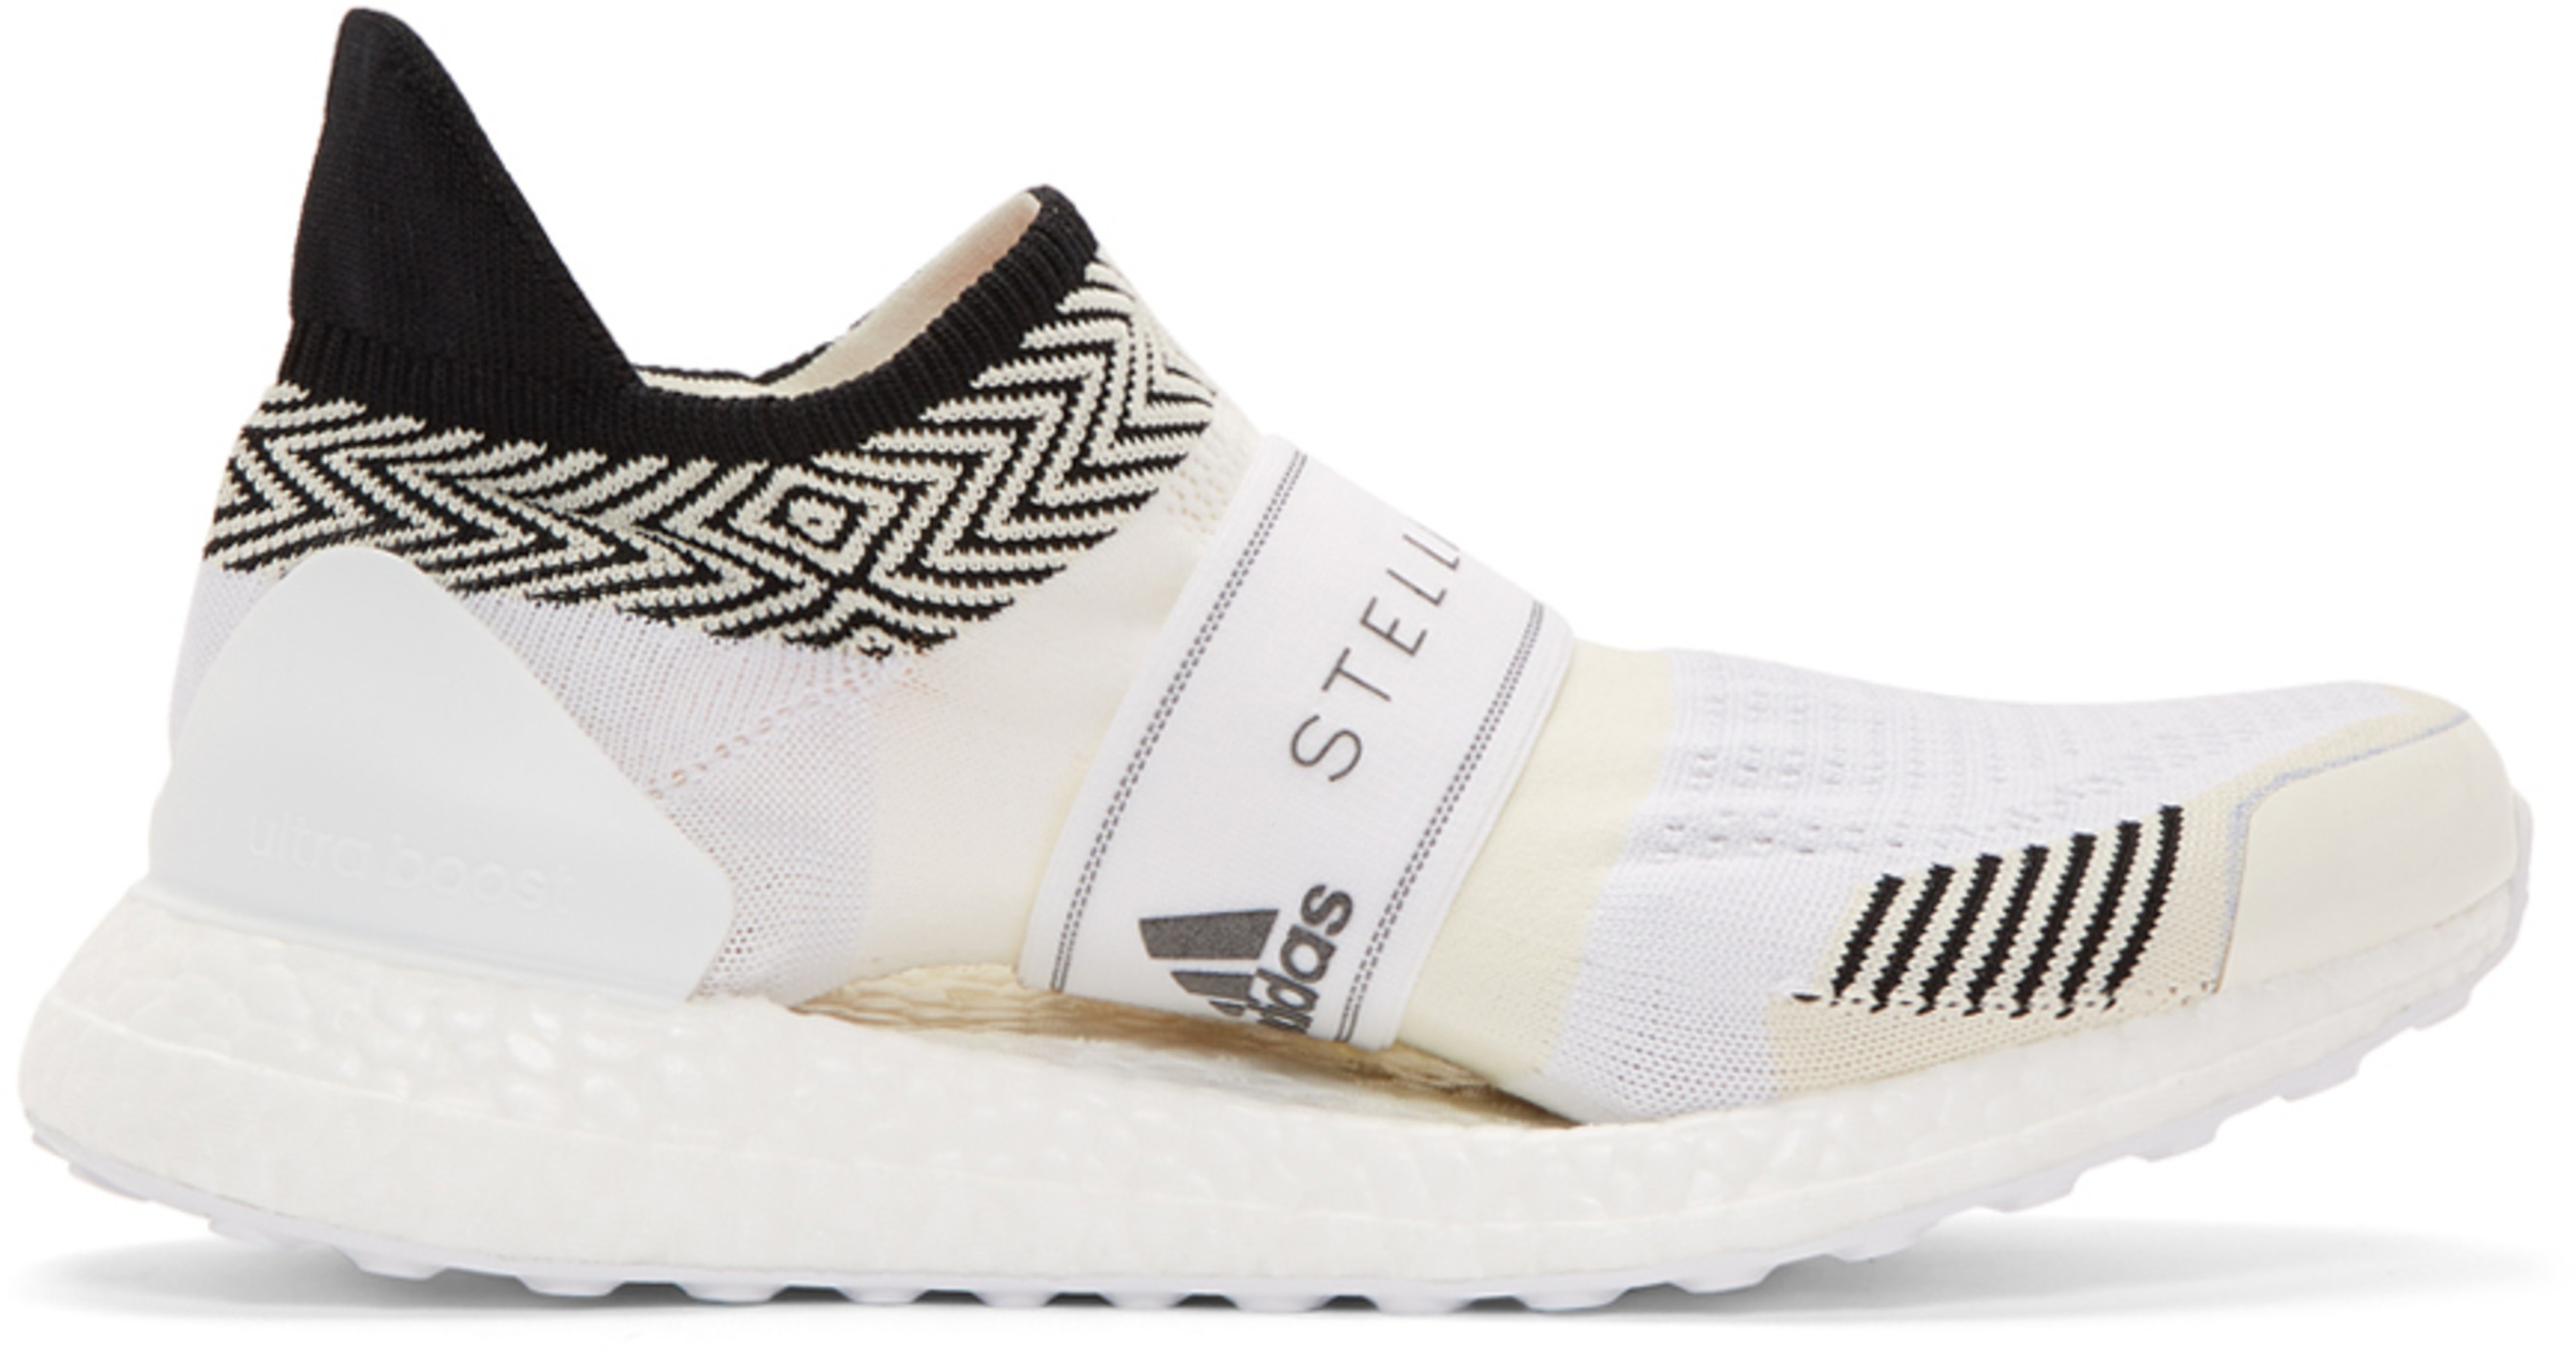 83ebc1a5a Adidas By Stella Mccartney for Women SS19 Collection